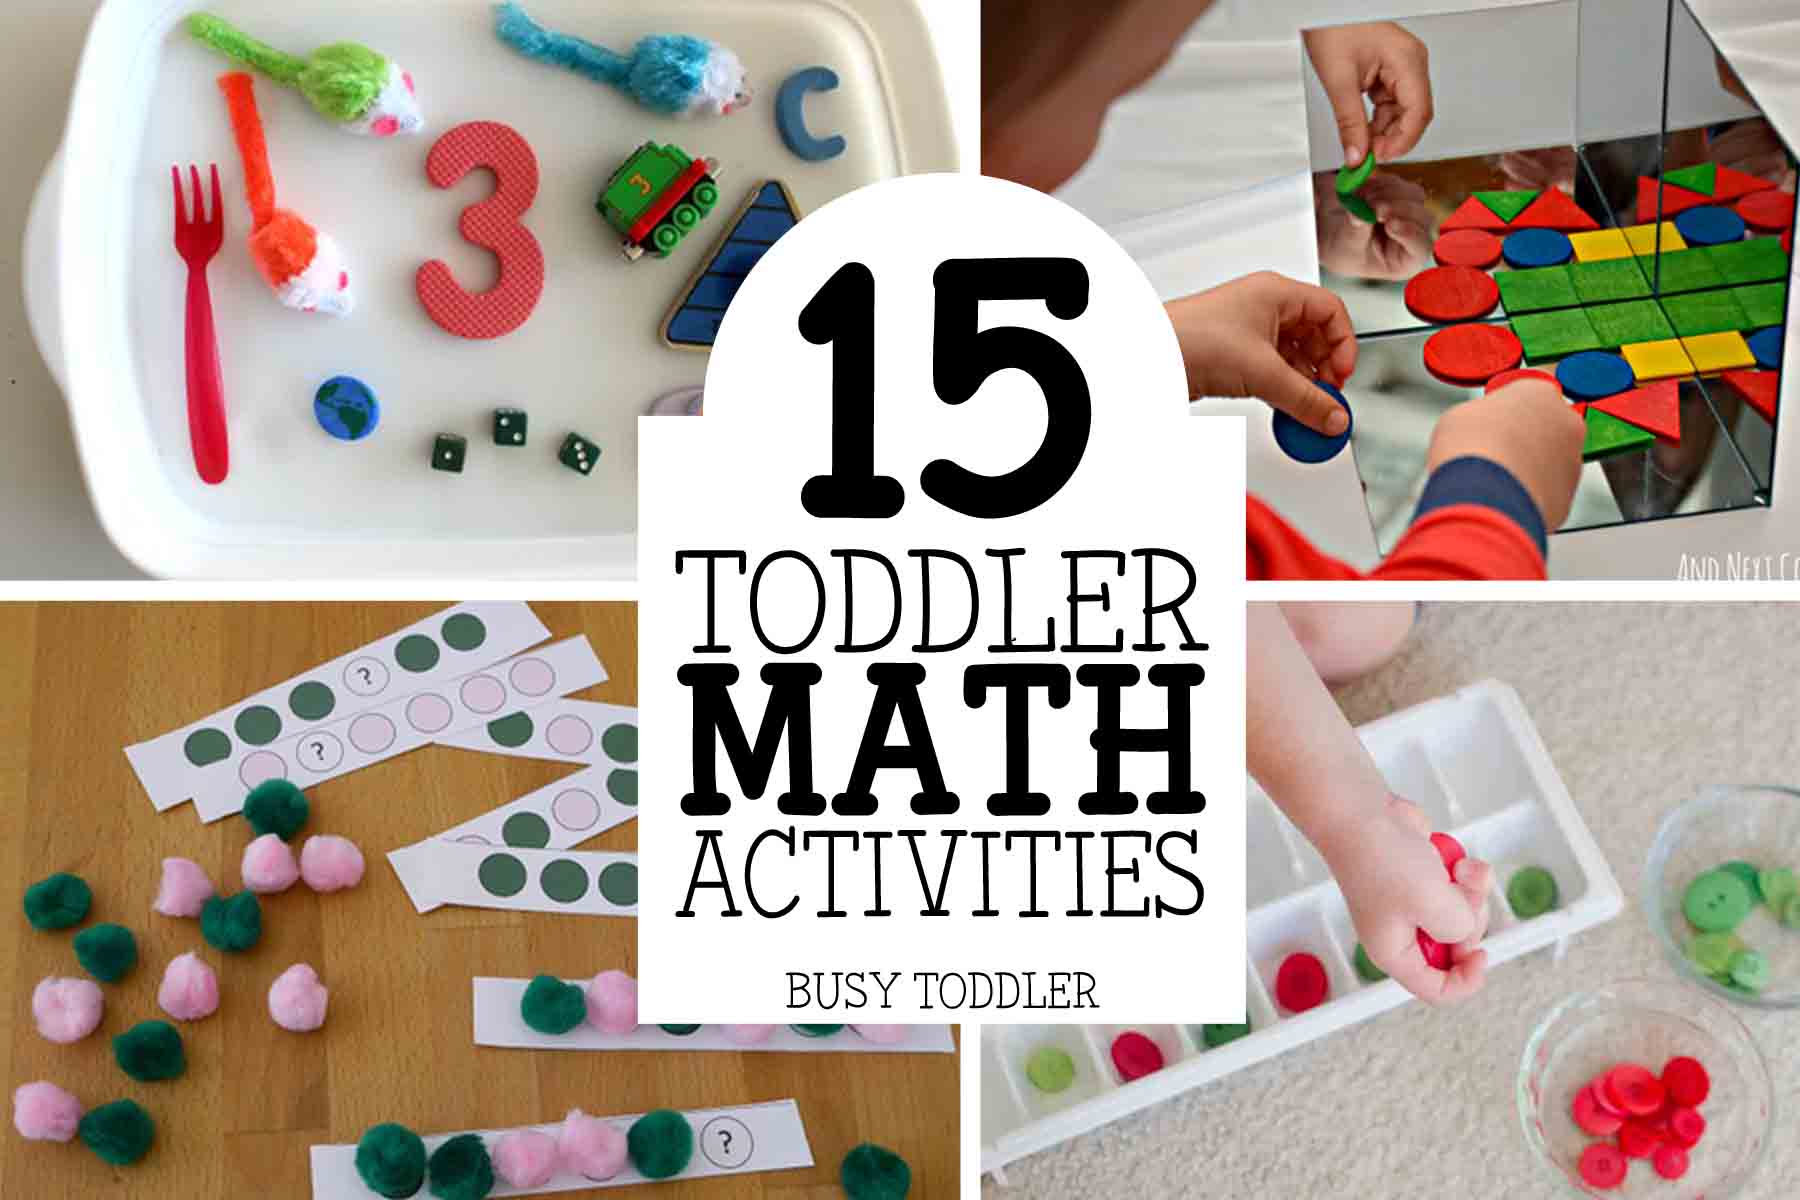 15 Toddler Math Activities - Busy Toddler